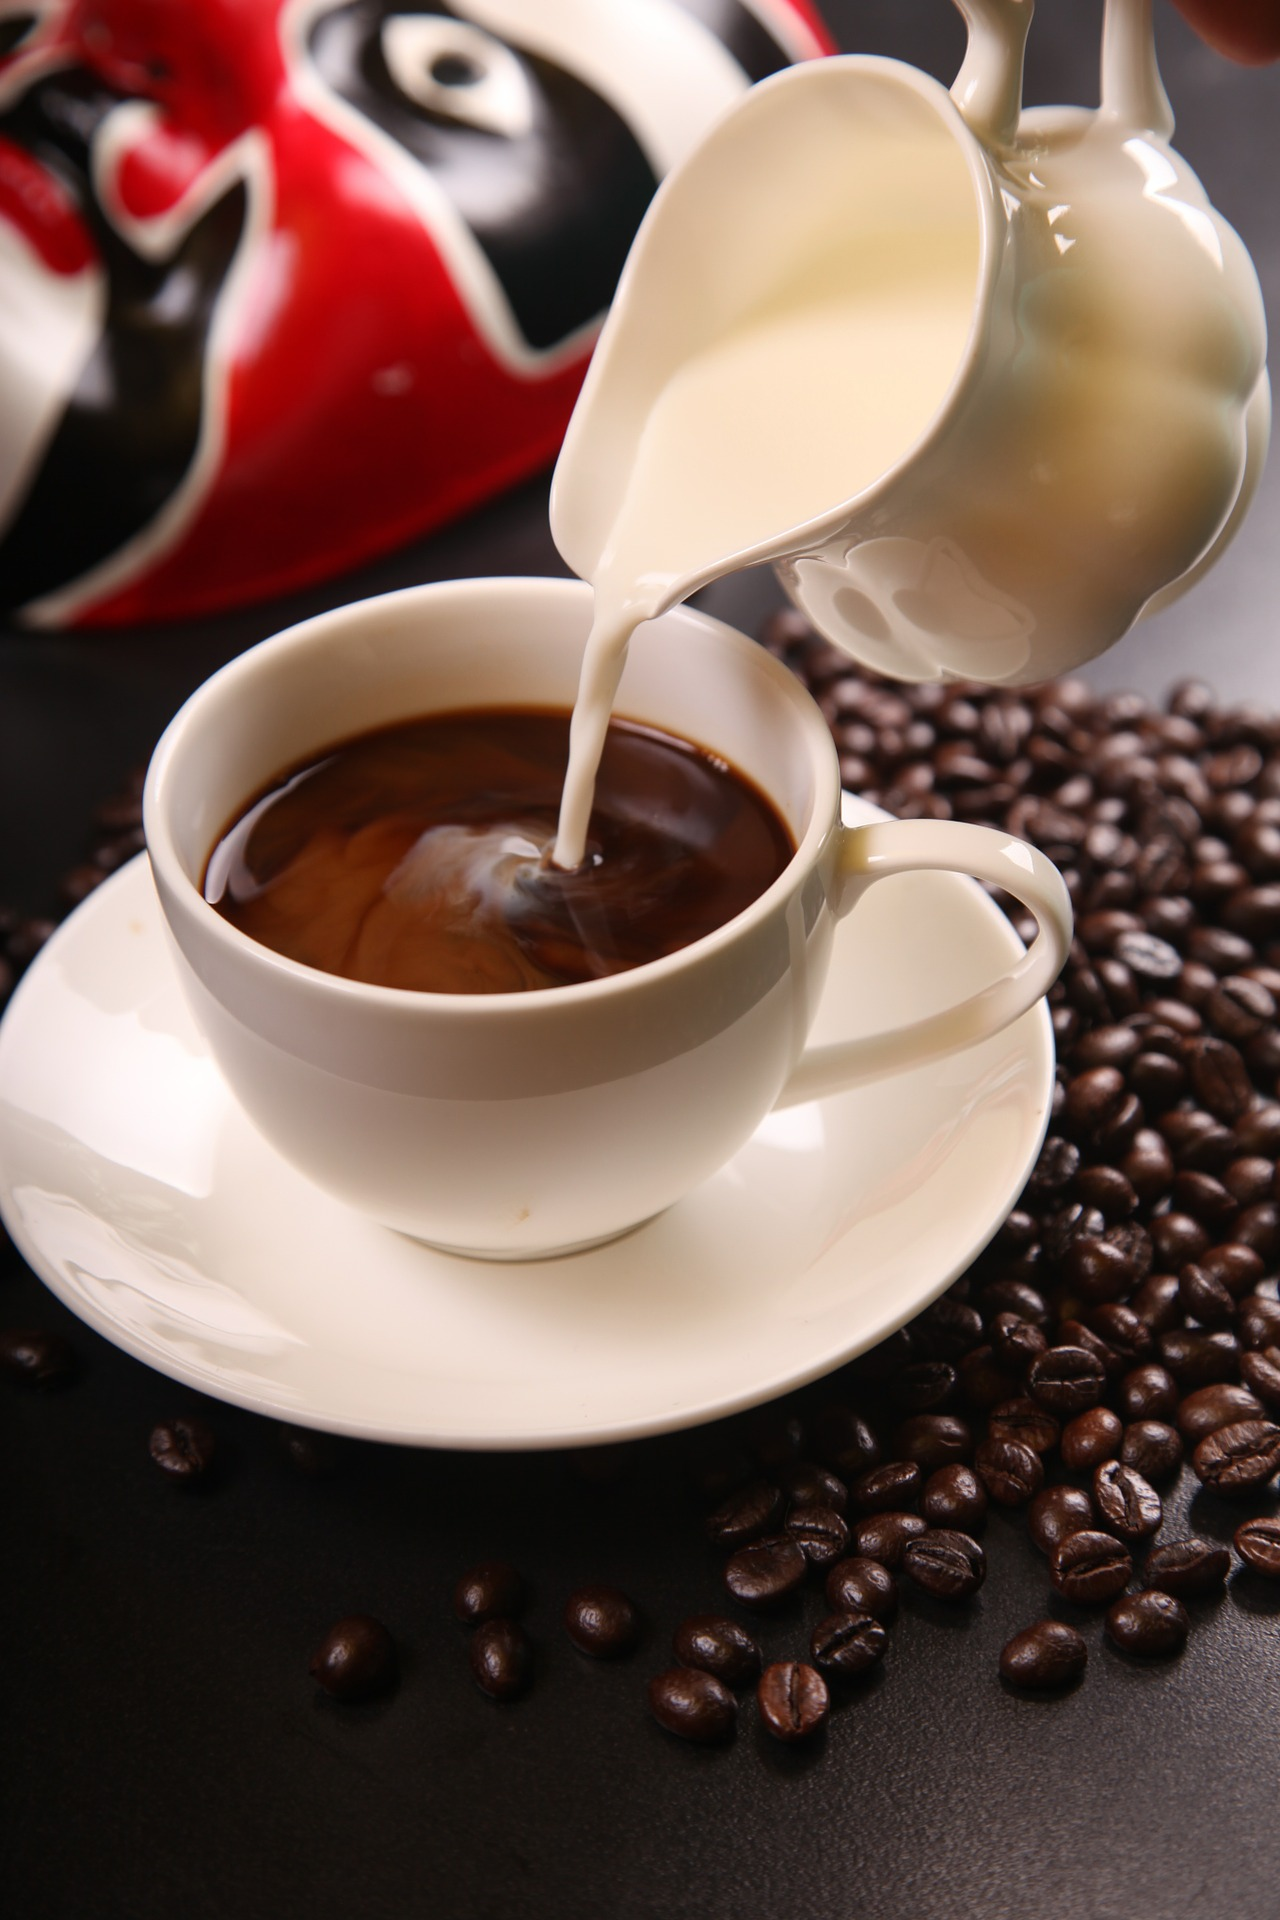 http://cabocoffee.com/wp-content/uploads/2015/10/coffee-563800_1920.jpg